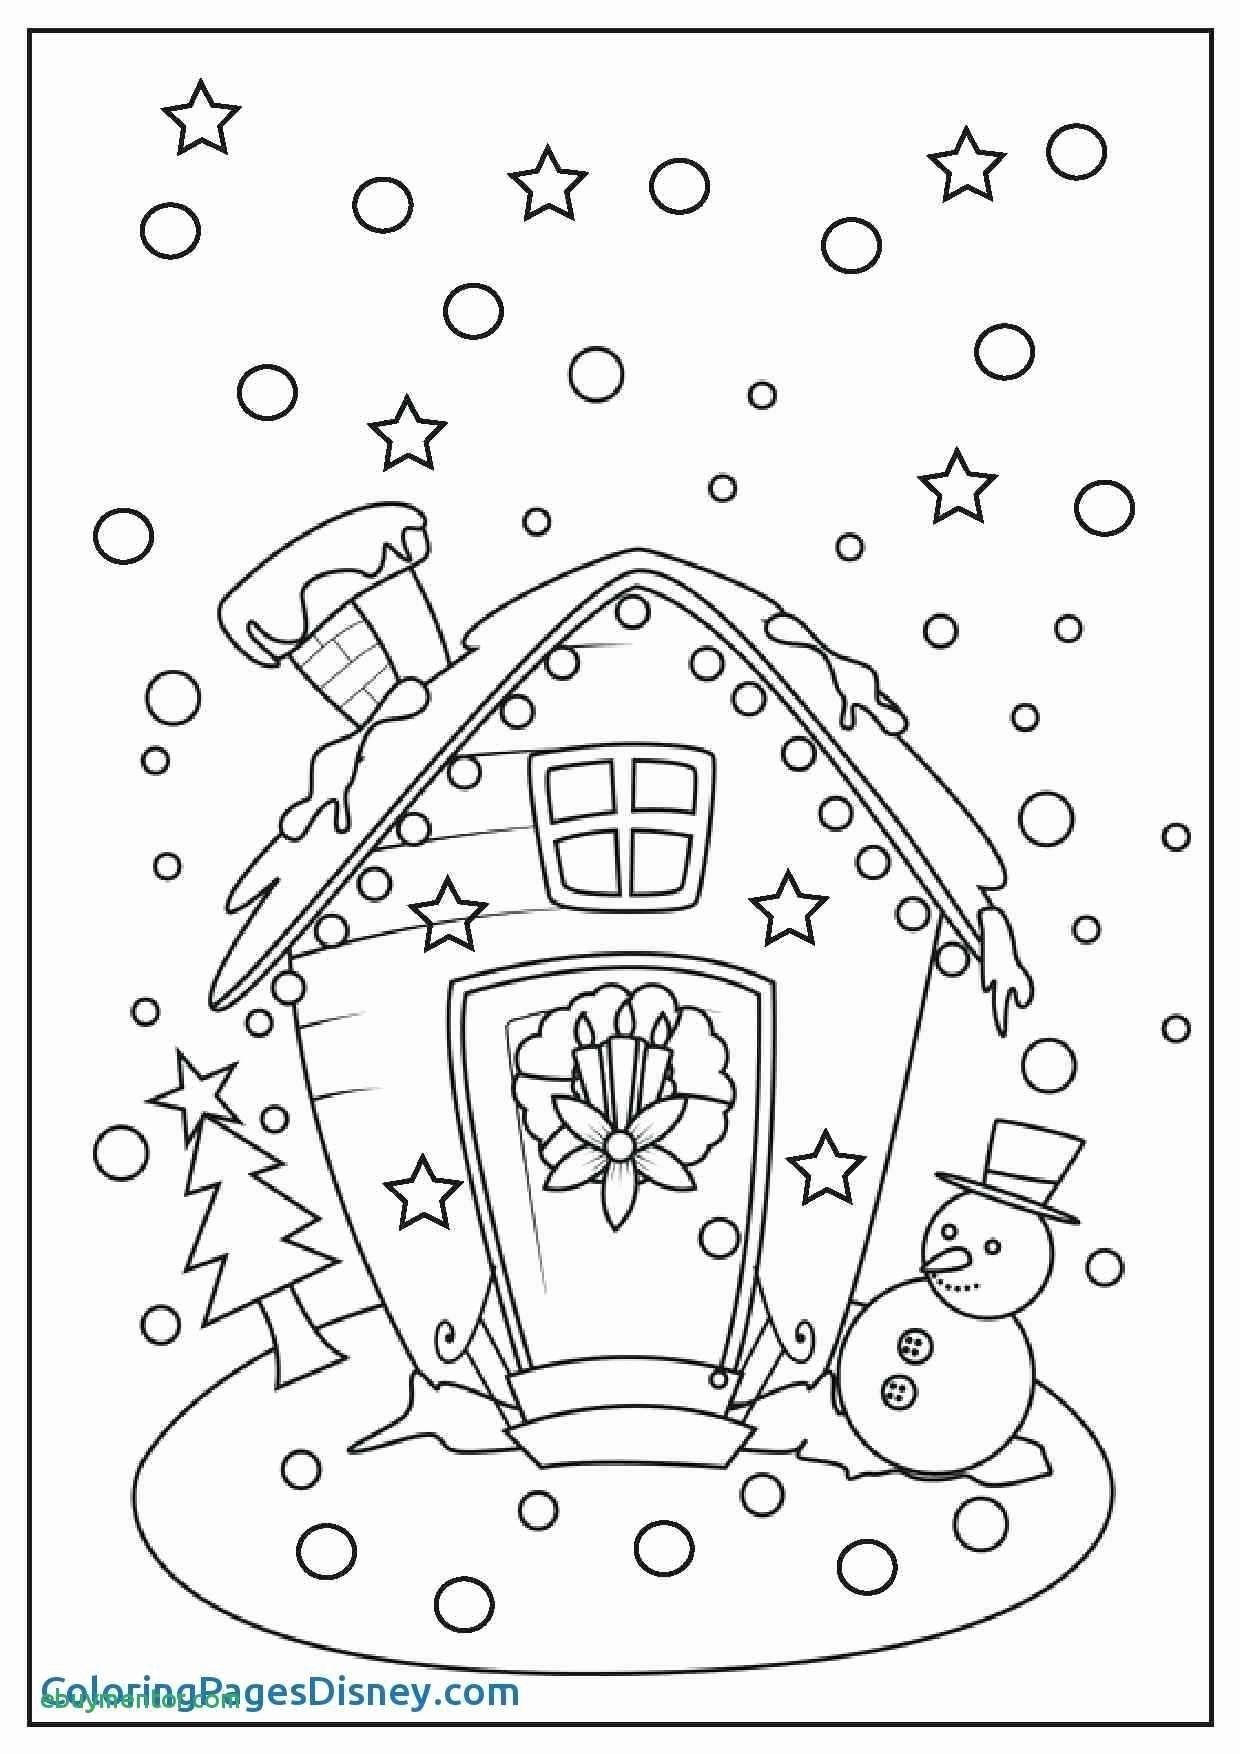 Winter Coloring Pages Adults Awesome Coffee Table Coloring Book For Toddler In 2020 Printable Christmas Coloring Pages Christmas Coloring Sheets Mandala Coloring Pages